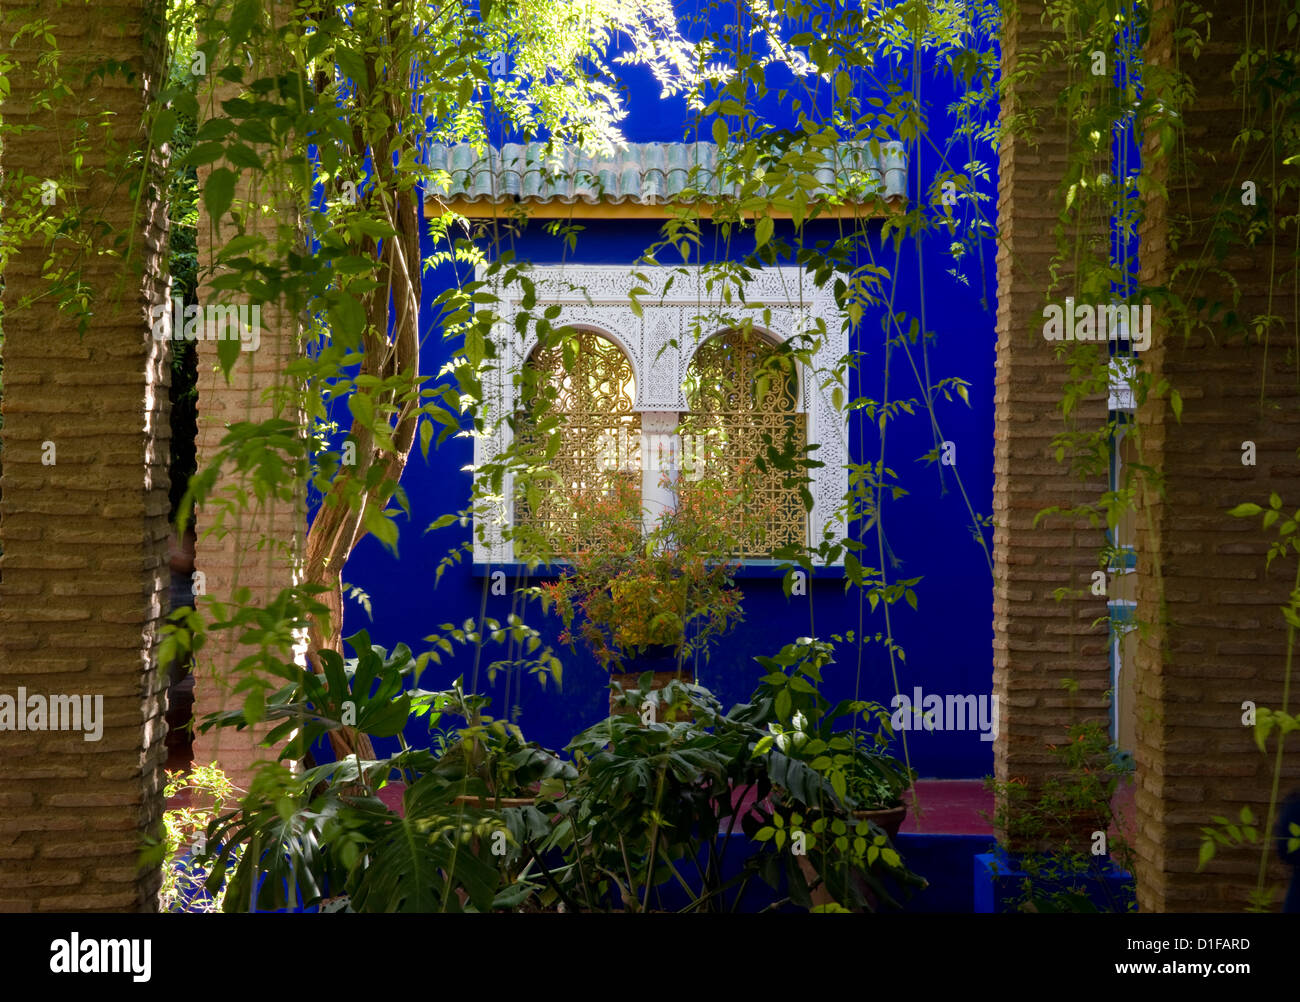 A view through a pergola to windows surrounded by blue walls at the Majorelle Garden in Marrakech, Morocco, North - Stock Image